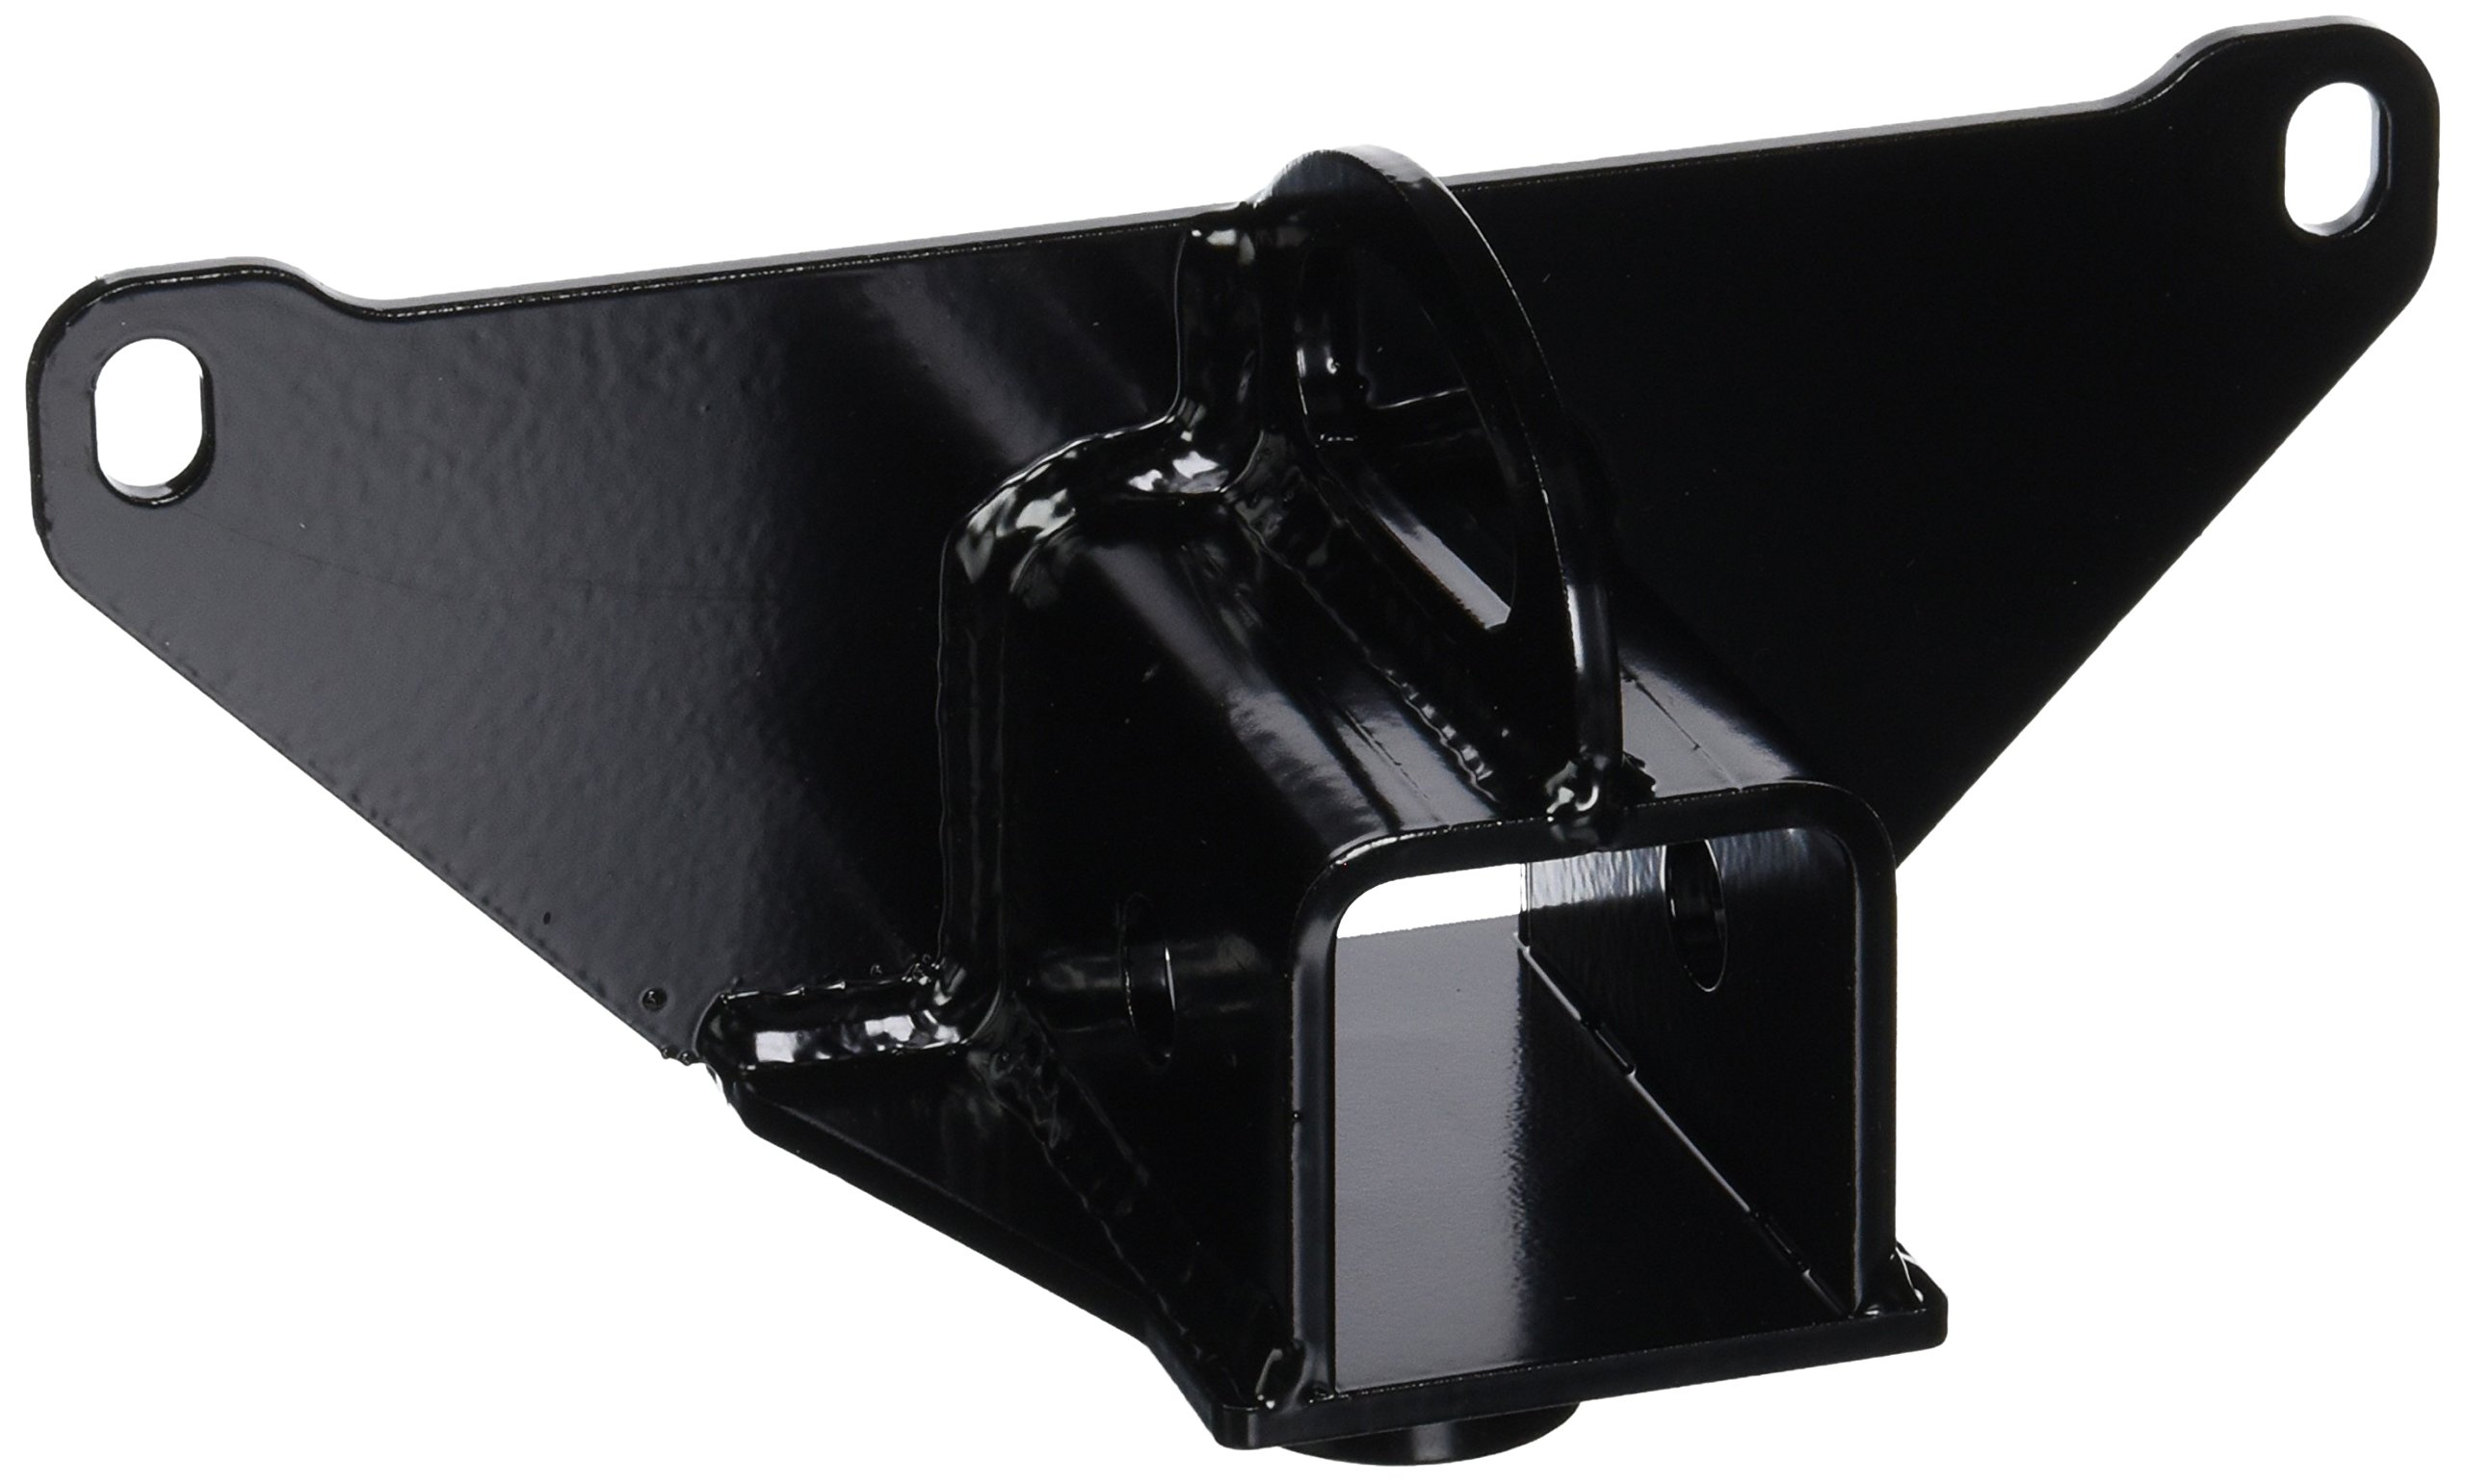 KFI Products 100645 Hitch Receiver by KFI Products